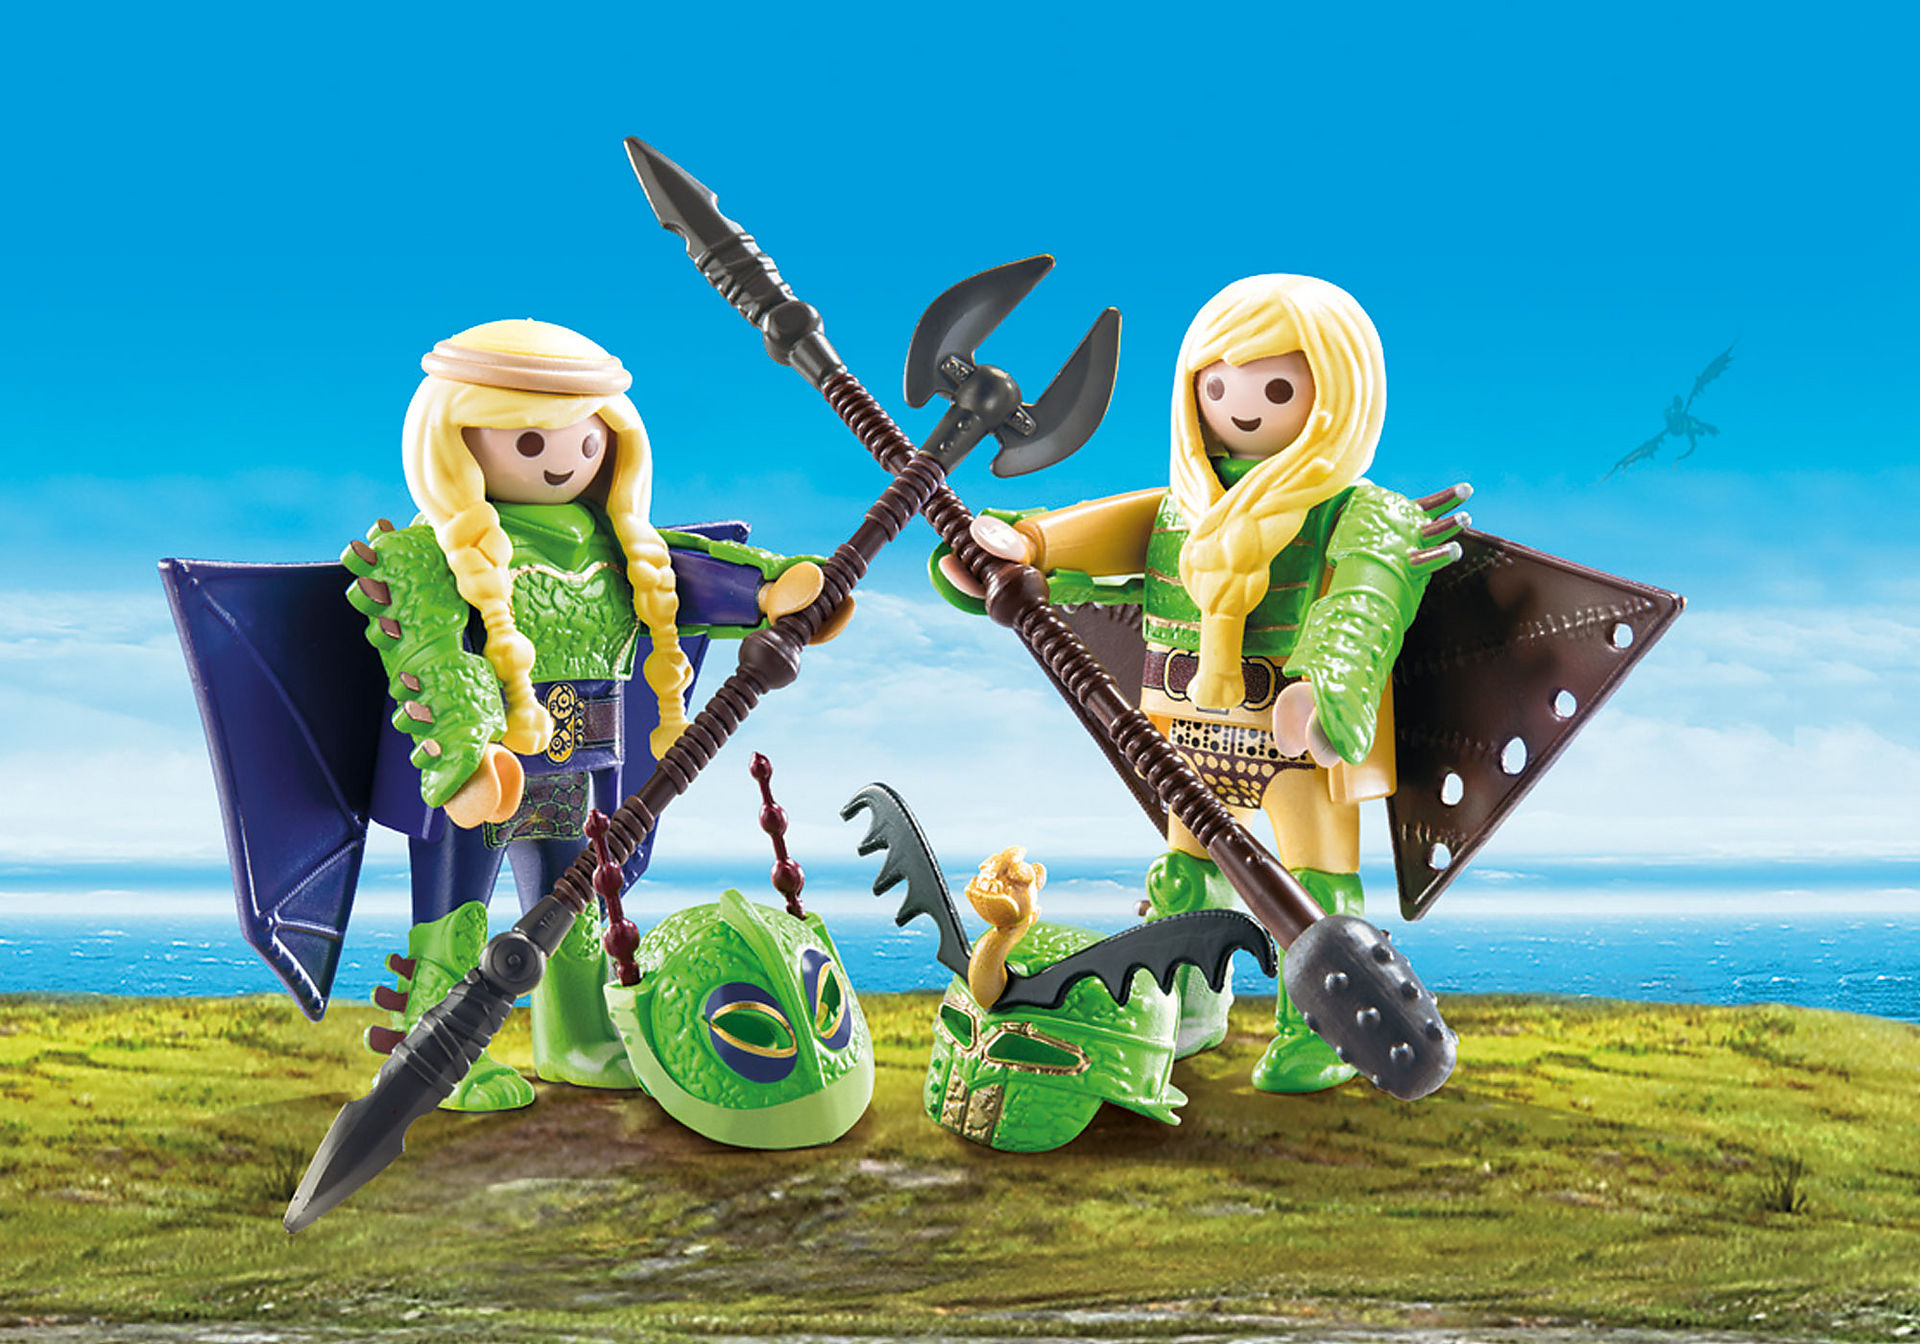 http://media.playmobil.com/i/playmobil/70042_product_detail/Ruffnut and Tuffnut with Flight Suit